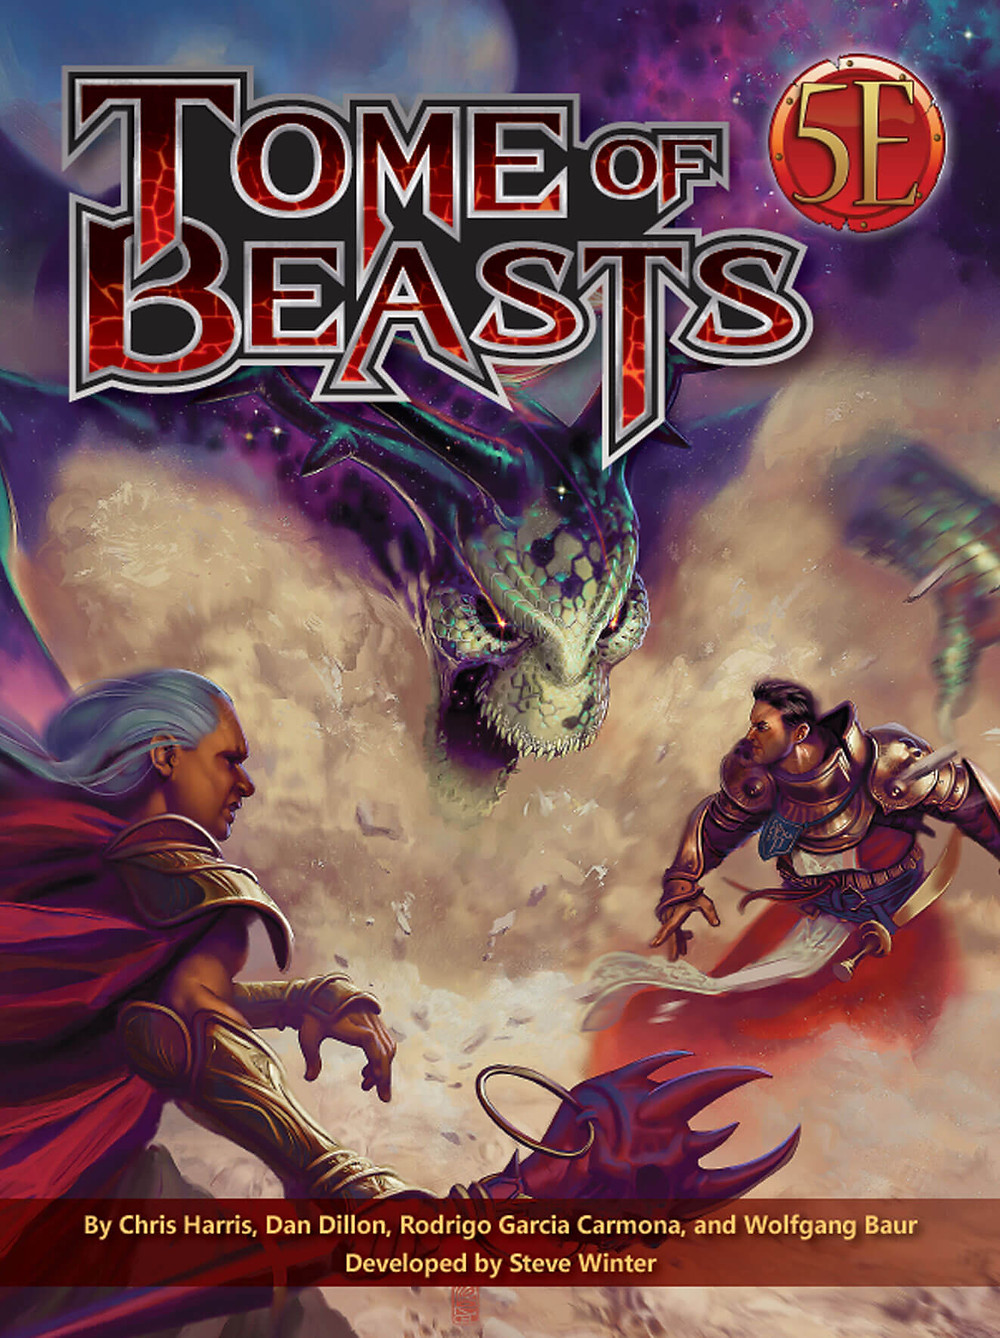 Tome of Beasts cover art: two masculine adventurers battling a large green menacing dragon with the text Tome of Beasts 5E by Chris Harris, Dan Dillon, Rodrigo Garcia Carmona, and Wolfgang Baur developed by Steve Winter.